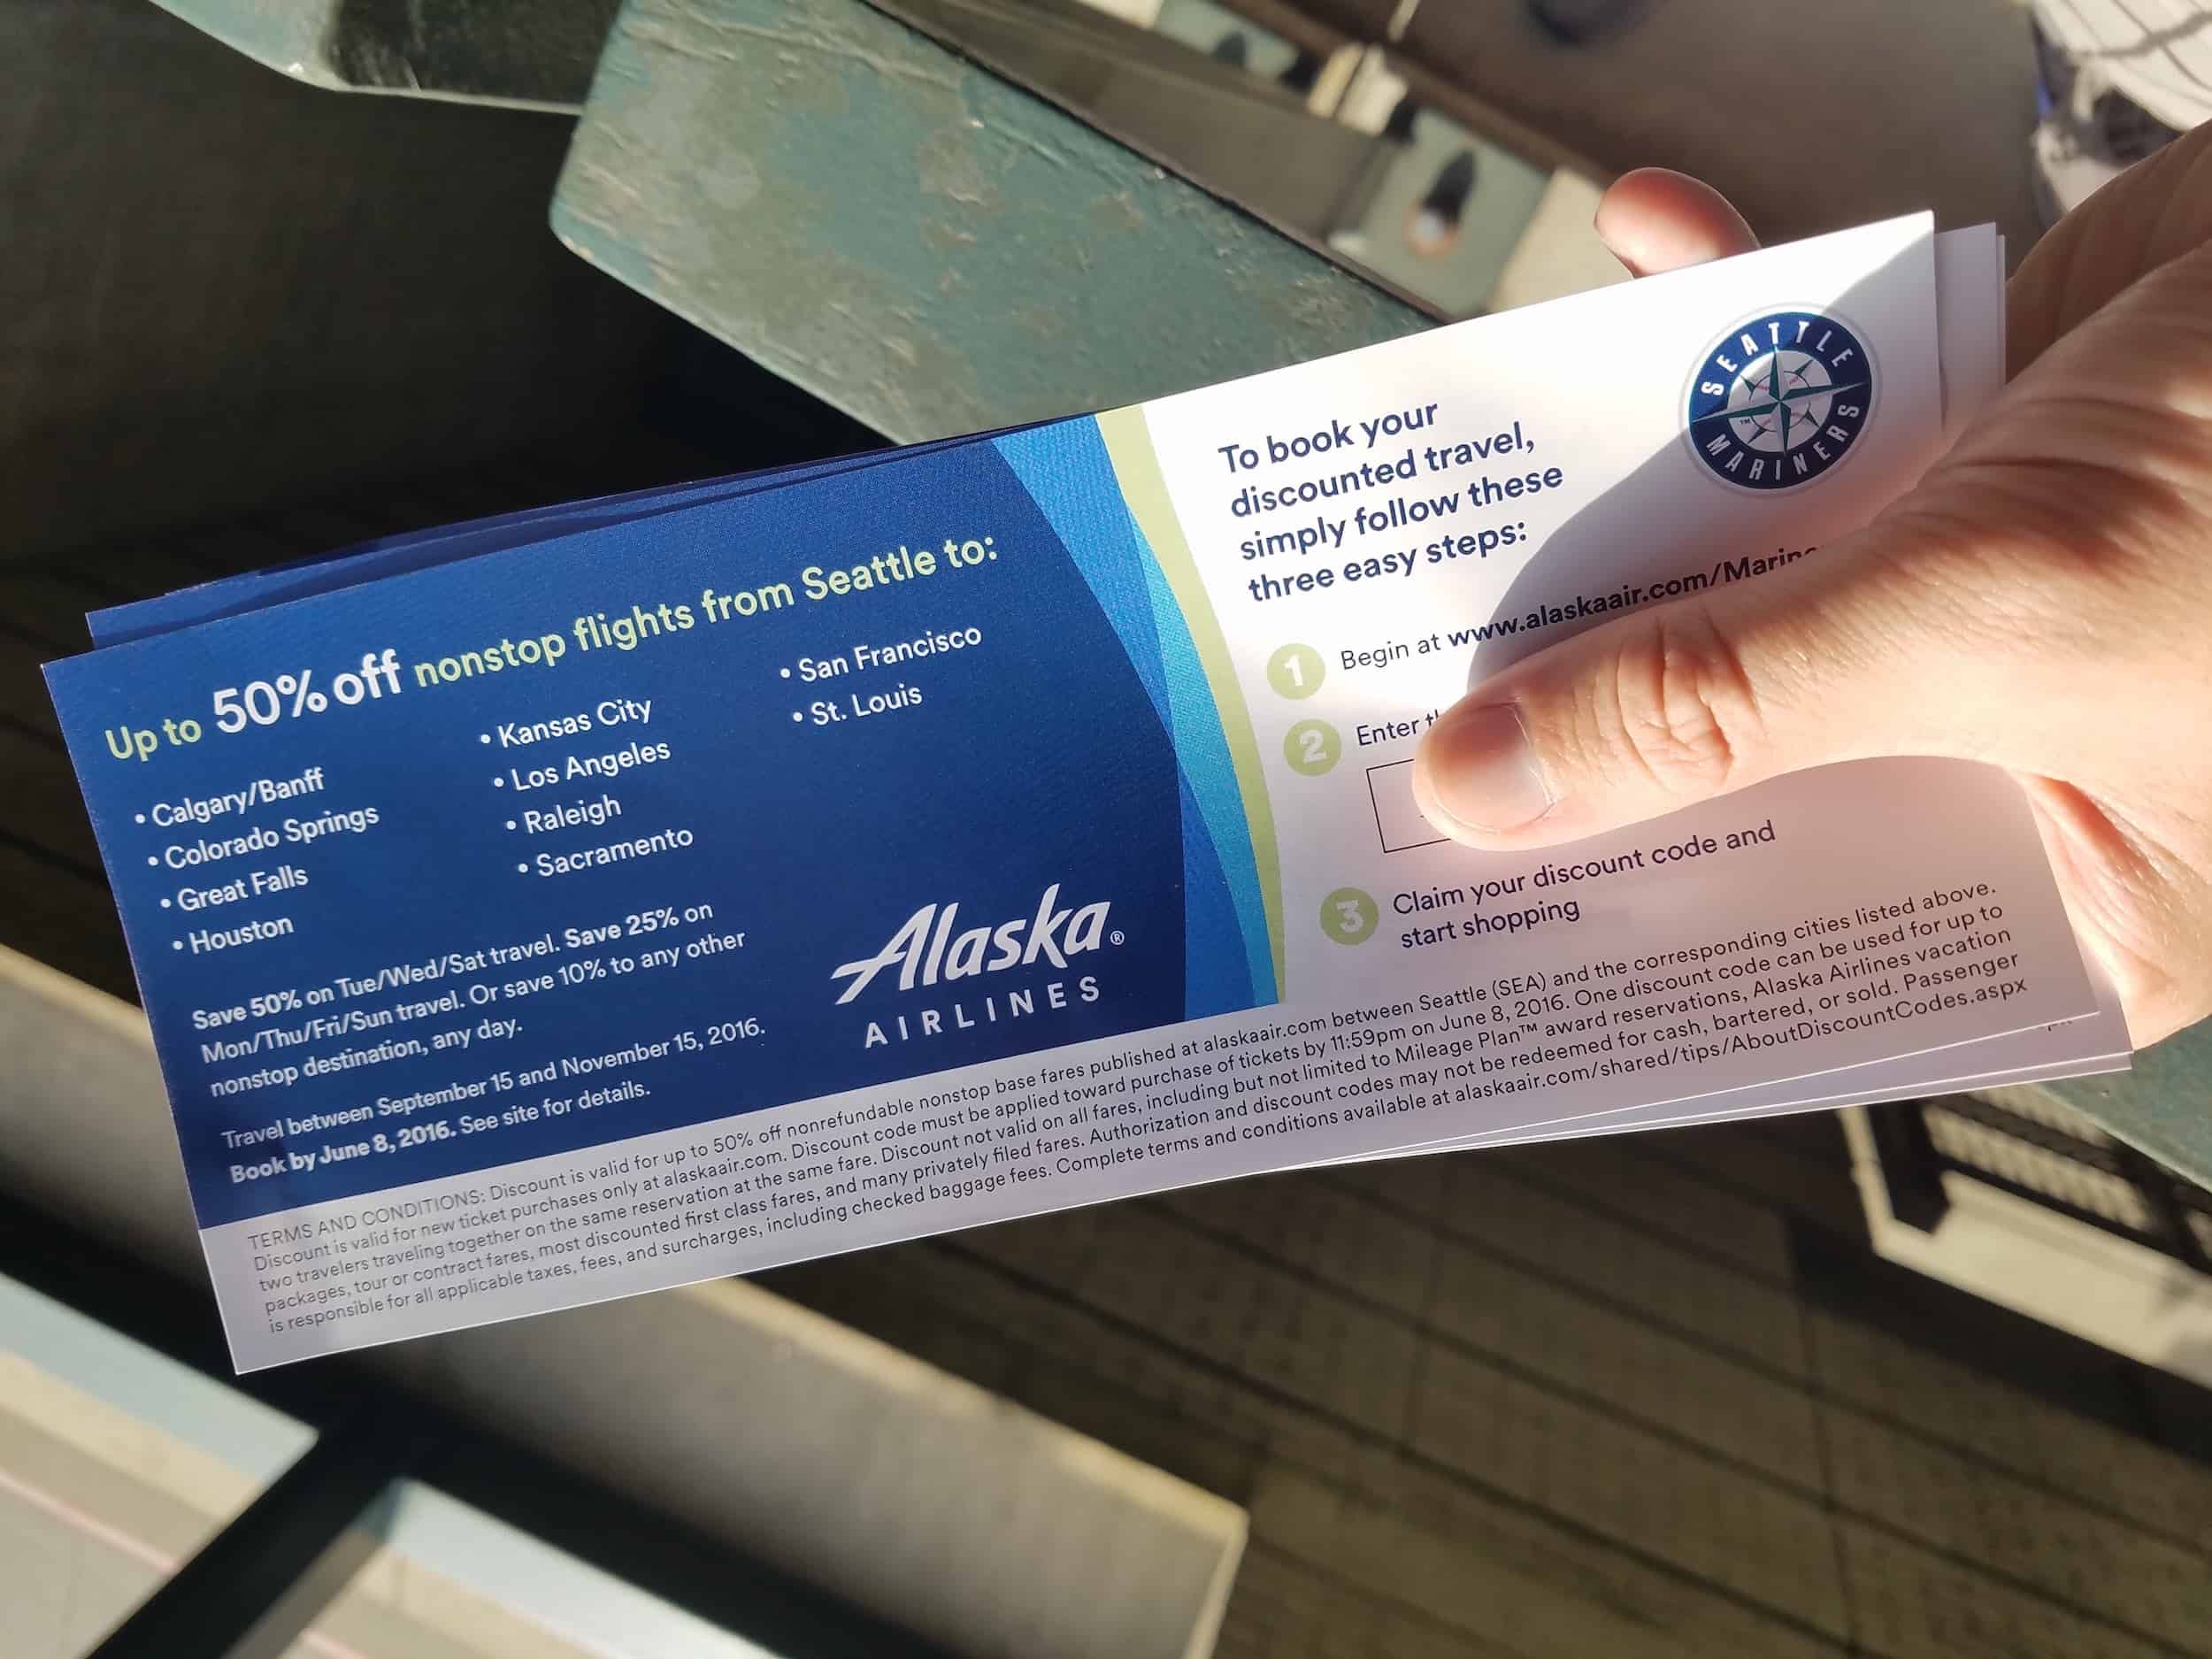 Seattle Mariners Alaska Airlines Voucher Singleflyer